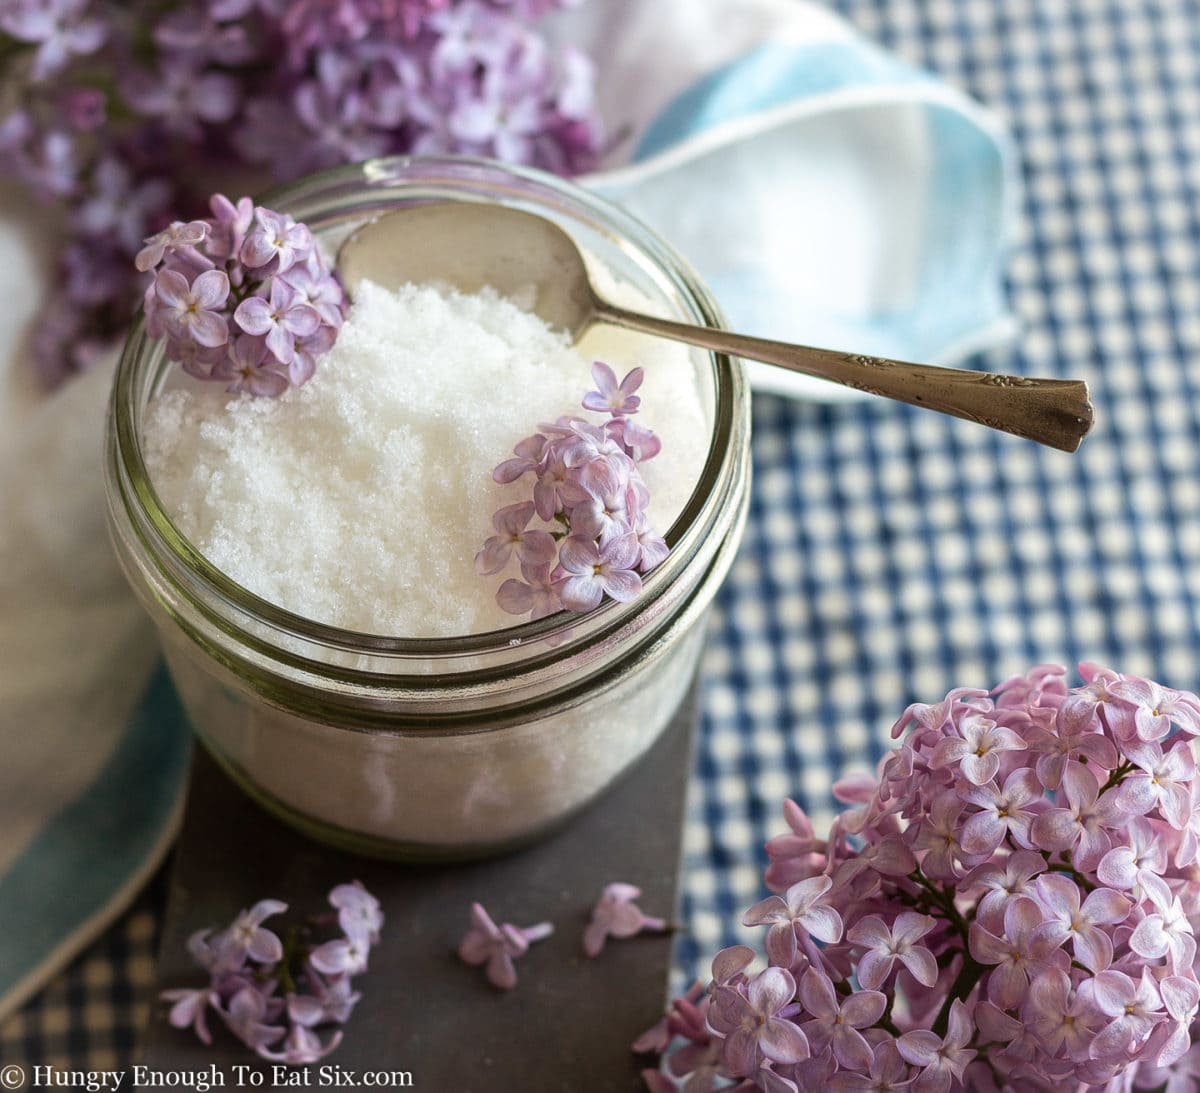 Blue checked tablecloth under a glass bowl of white sugar and purple lilac blooms.